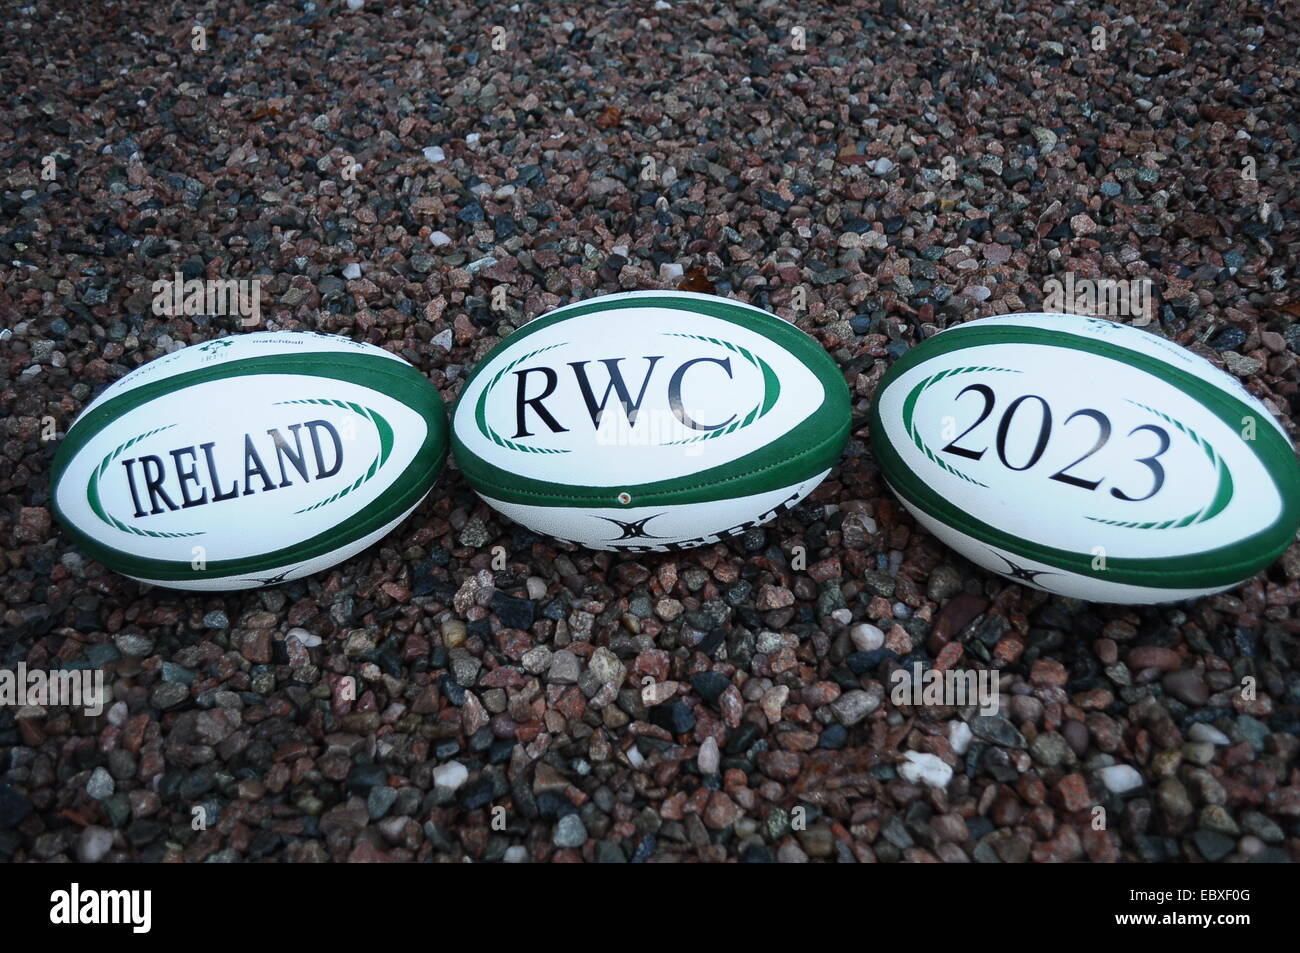 Irish Rugby Football Union (IRFU) launch bid to host Rugby World Cup 2023 in Ireland. Royal School Armagh  5 December - Stock Image